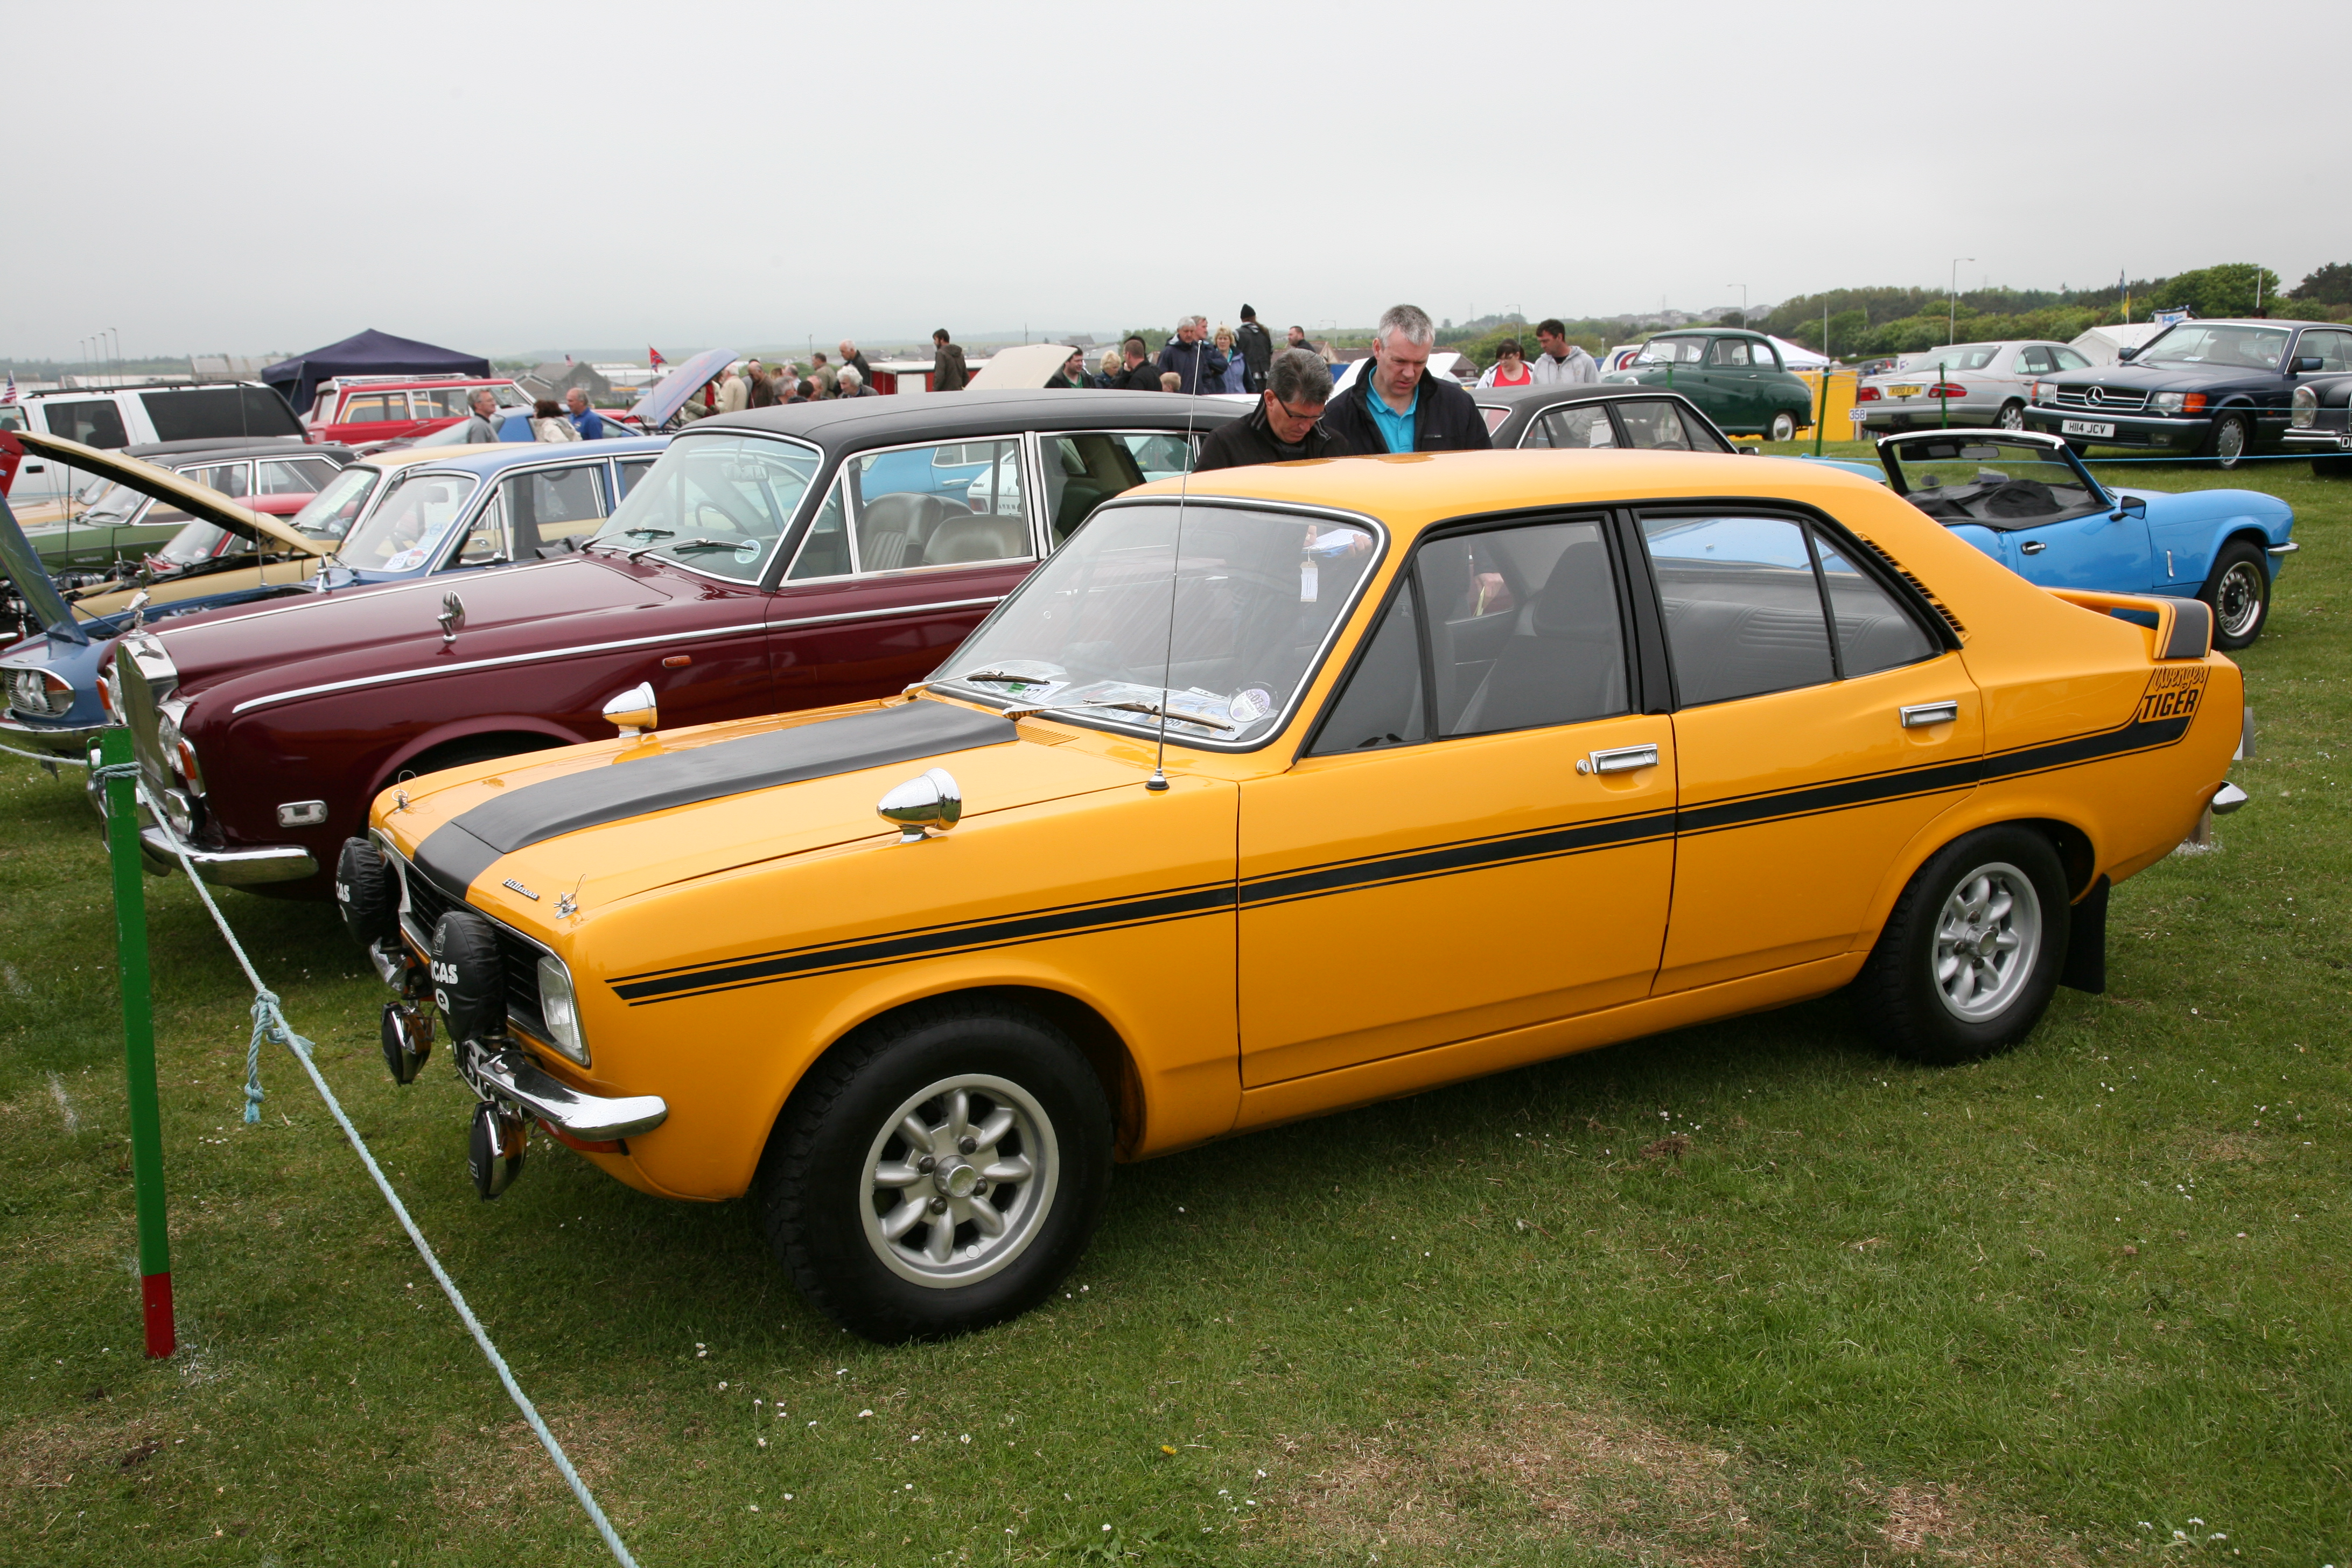 1973 Hillman Avenger Tiger Mk1 | Flickr - Photo Sharing!